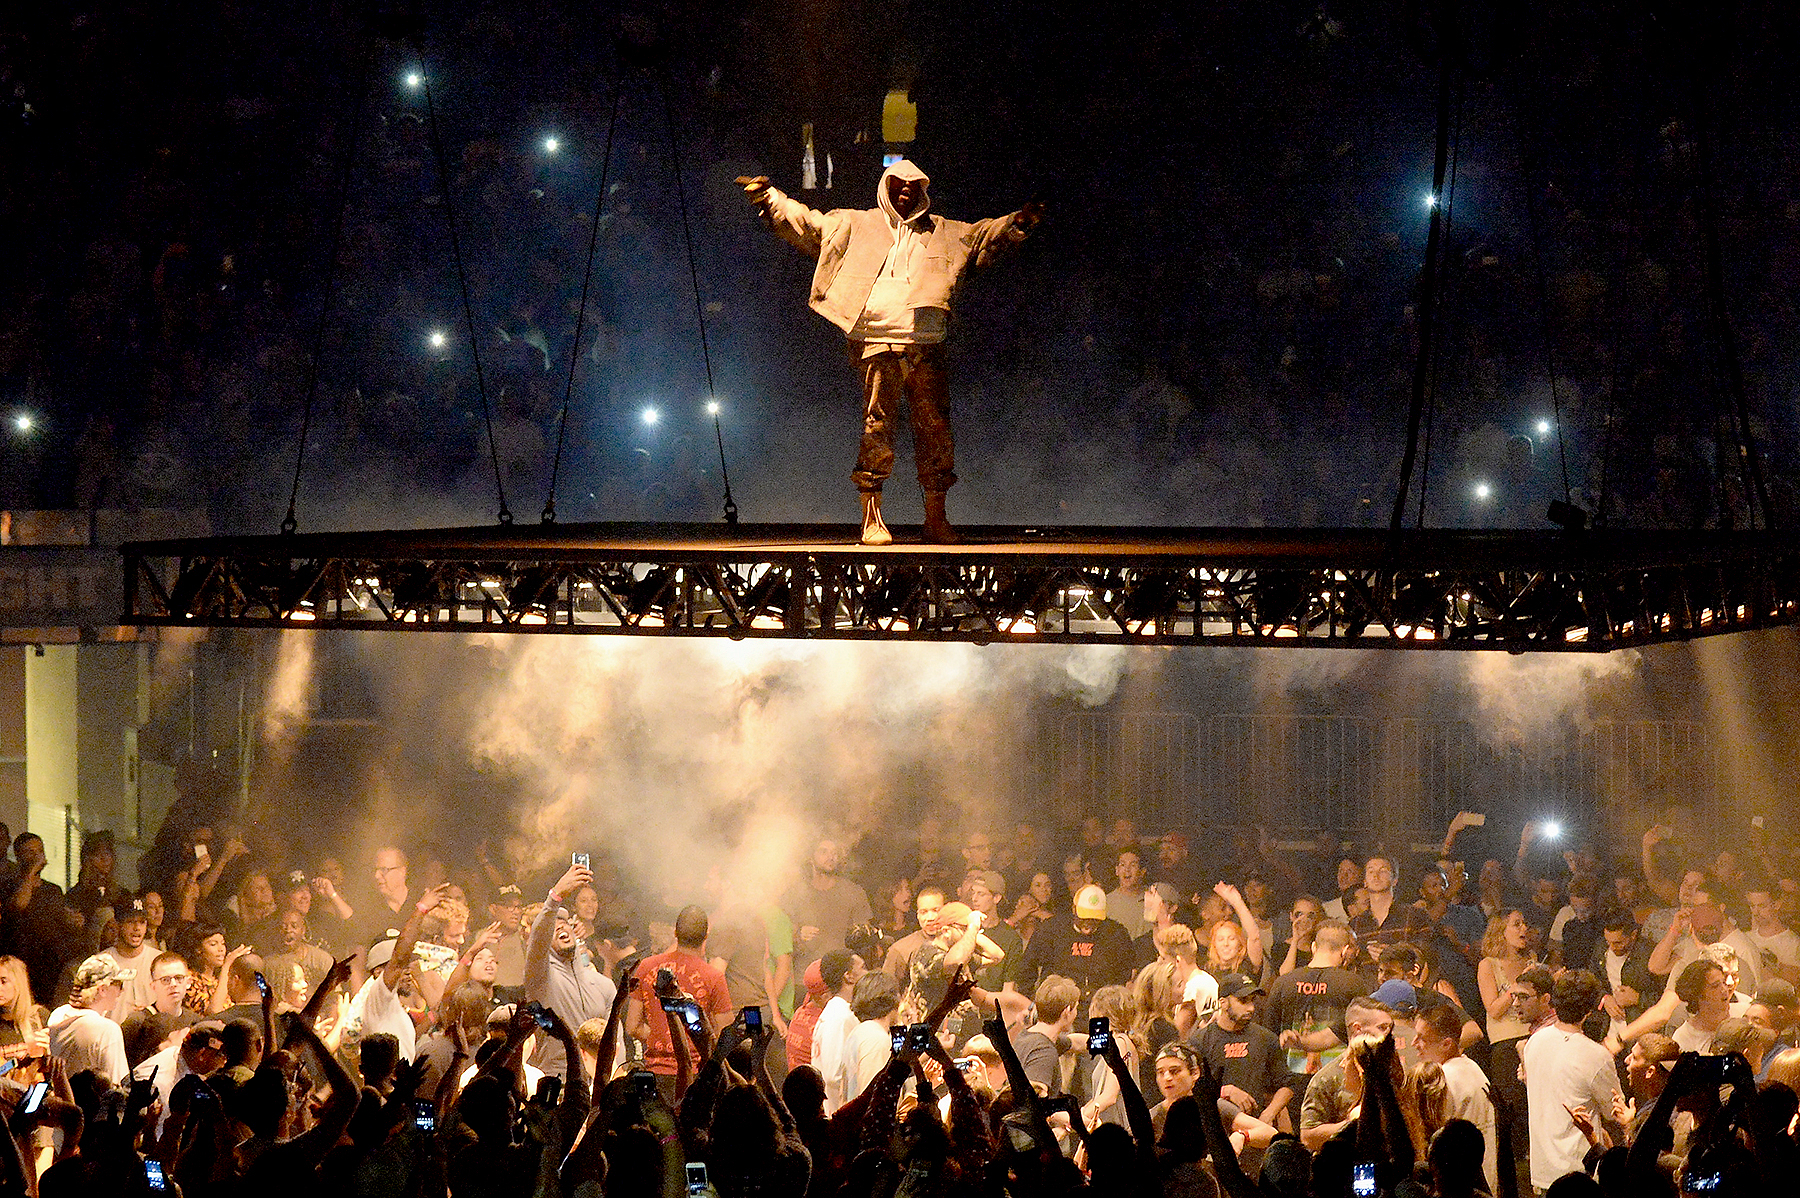 Kanye West performs during The Saint Pablo Tour at Madison Square Garden on September 5, 2016 in New York City.